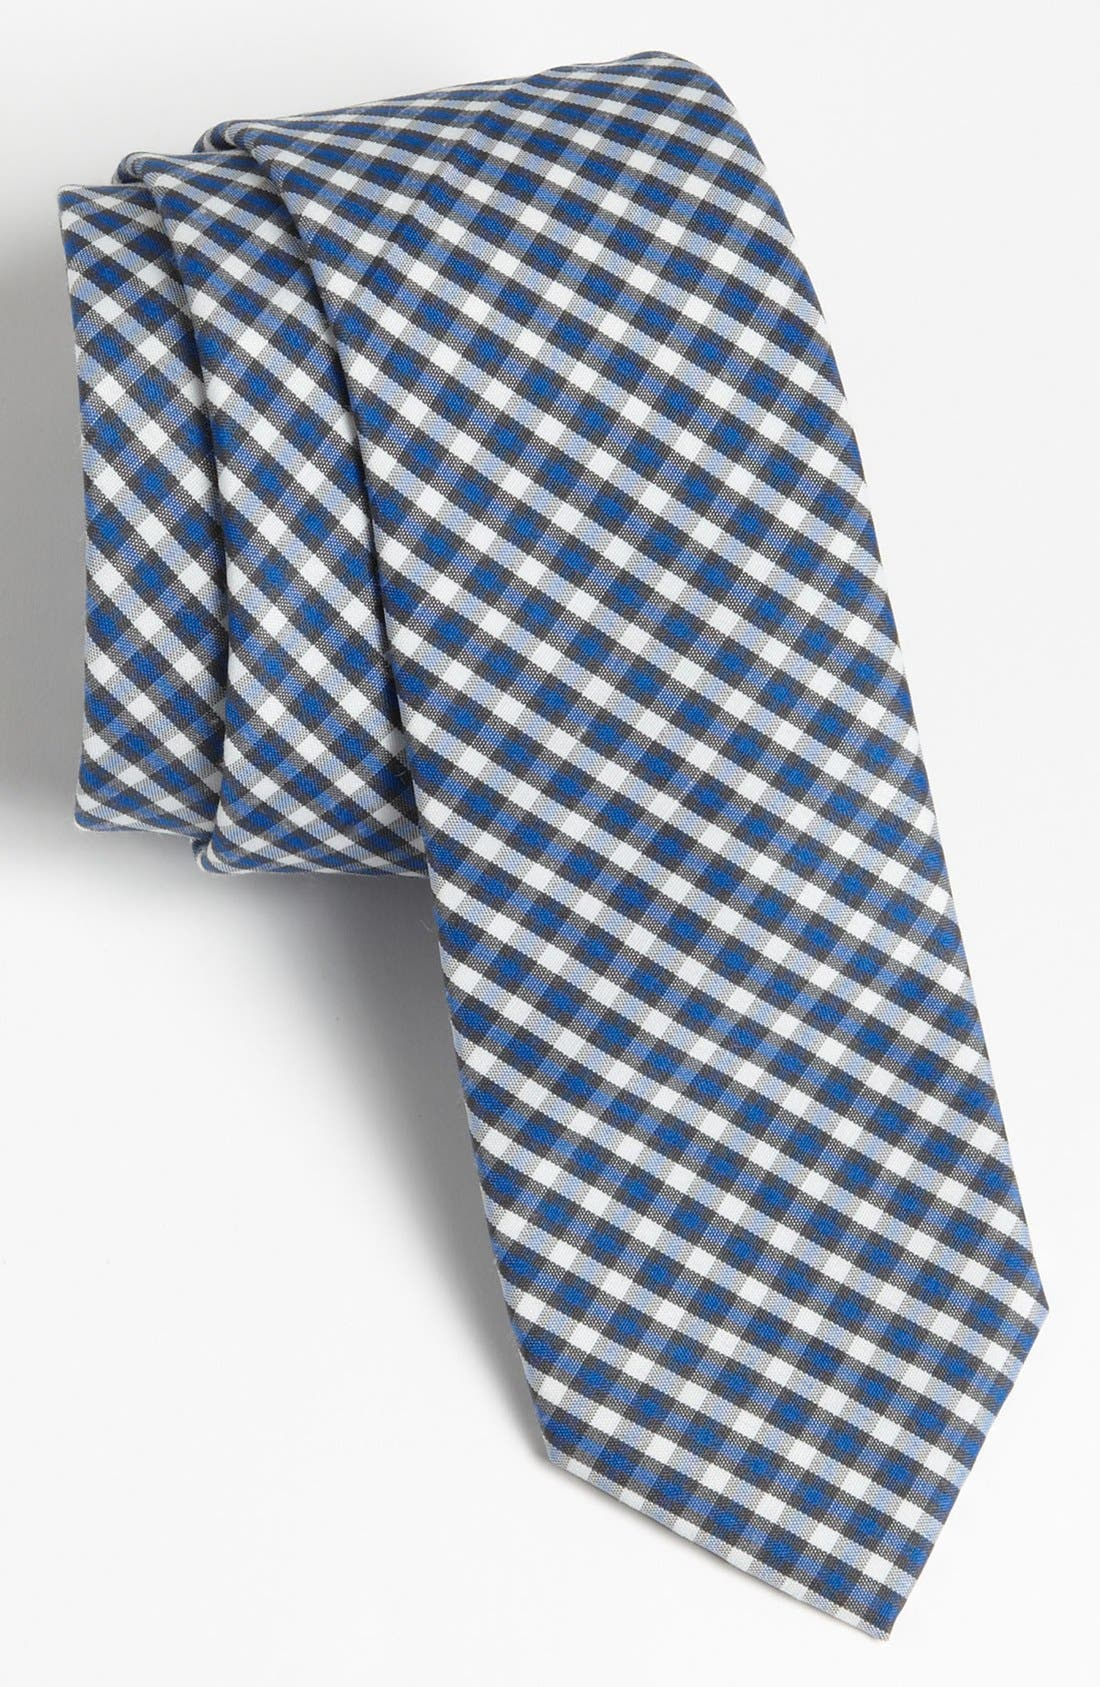 Alternate Image 1 Selected - 1901 Woven Tie